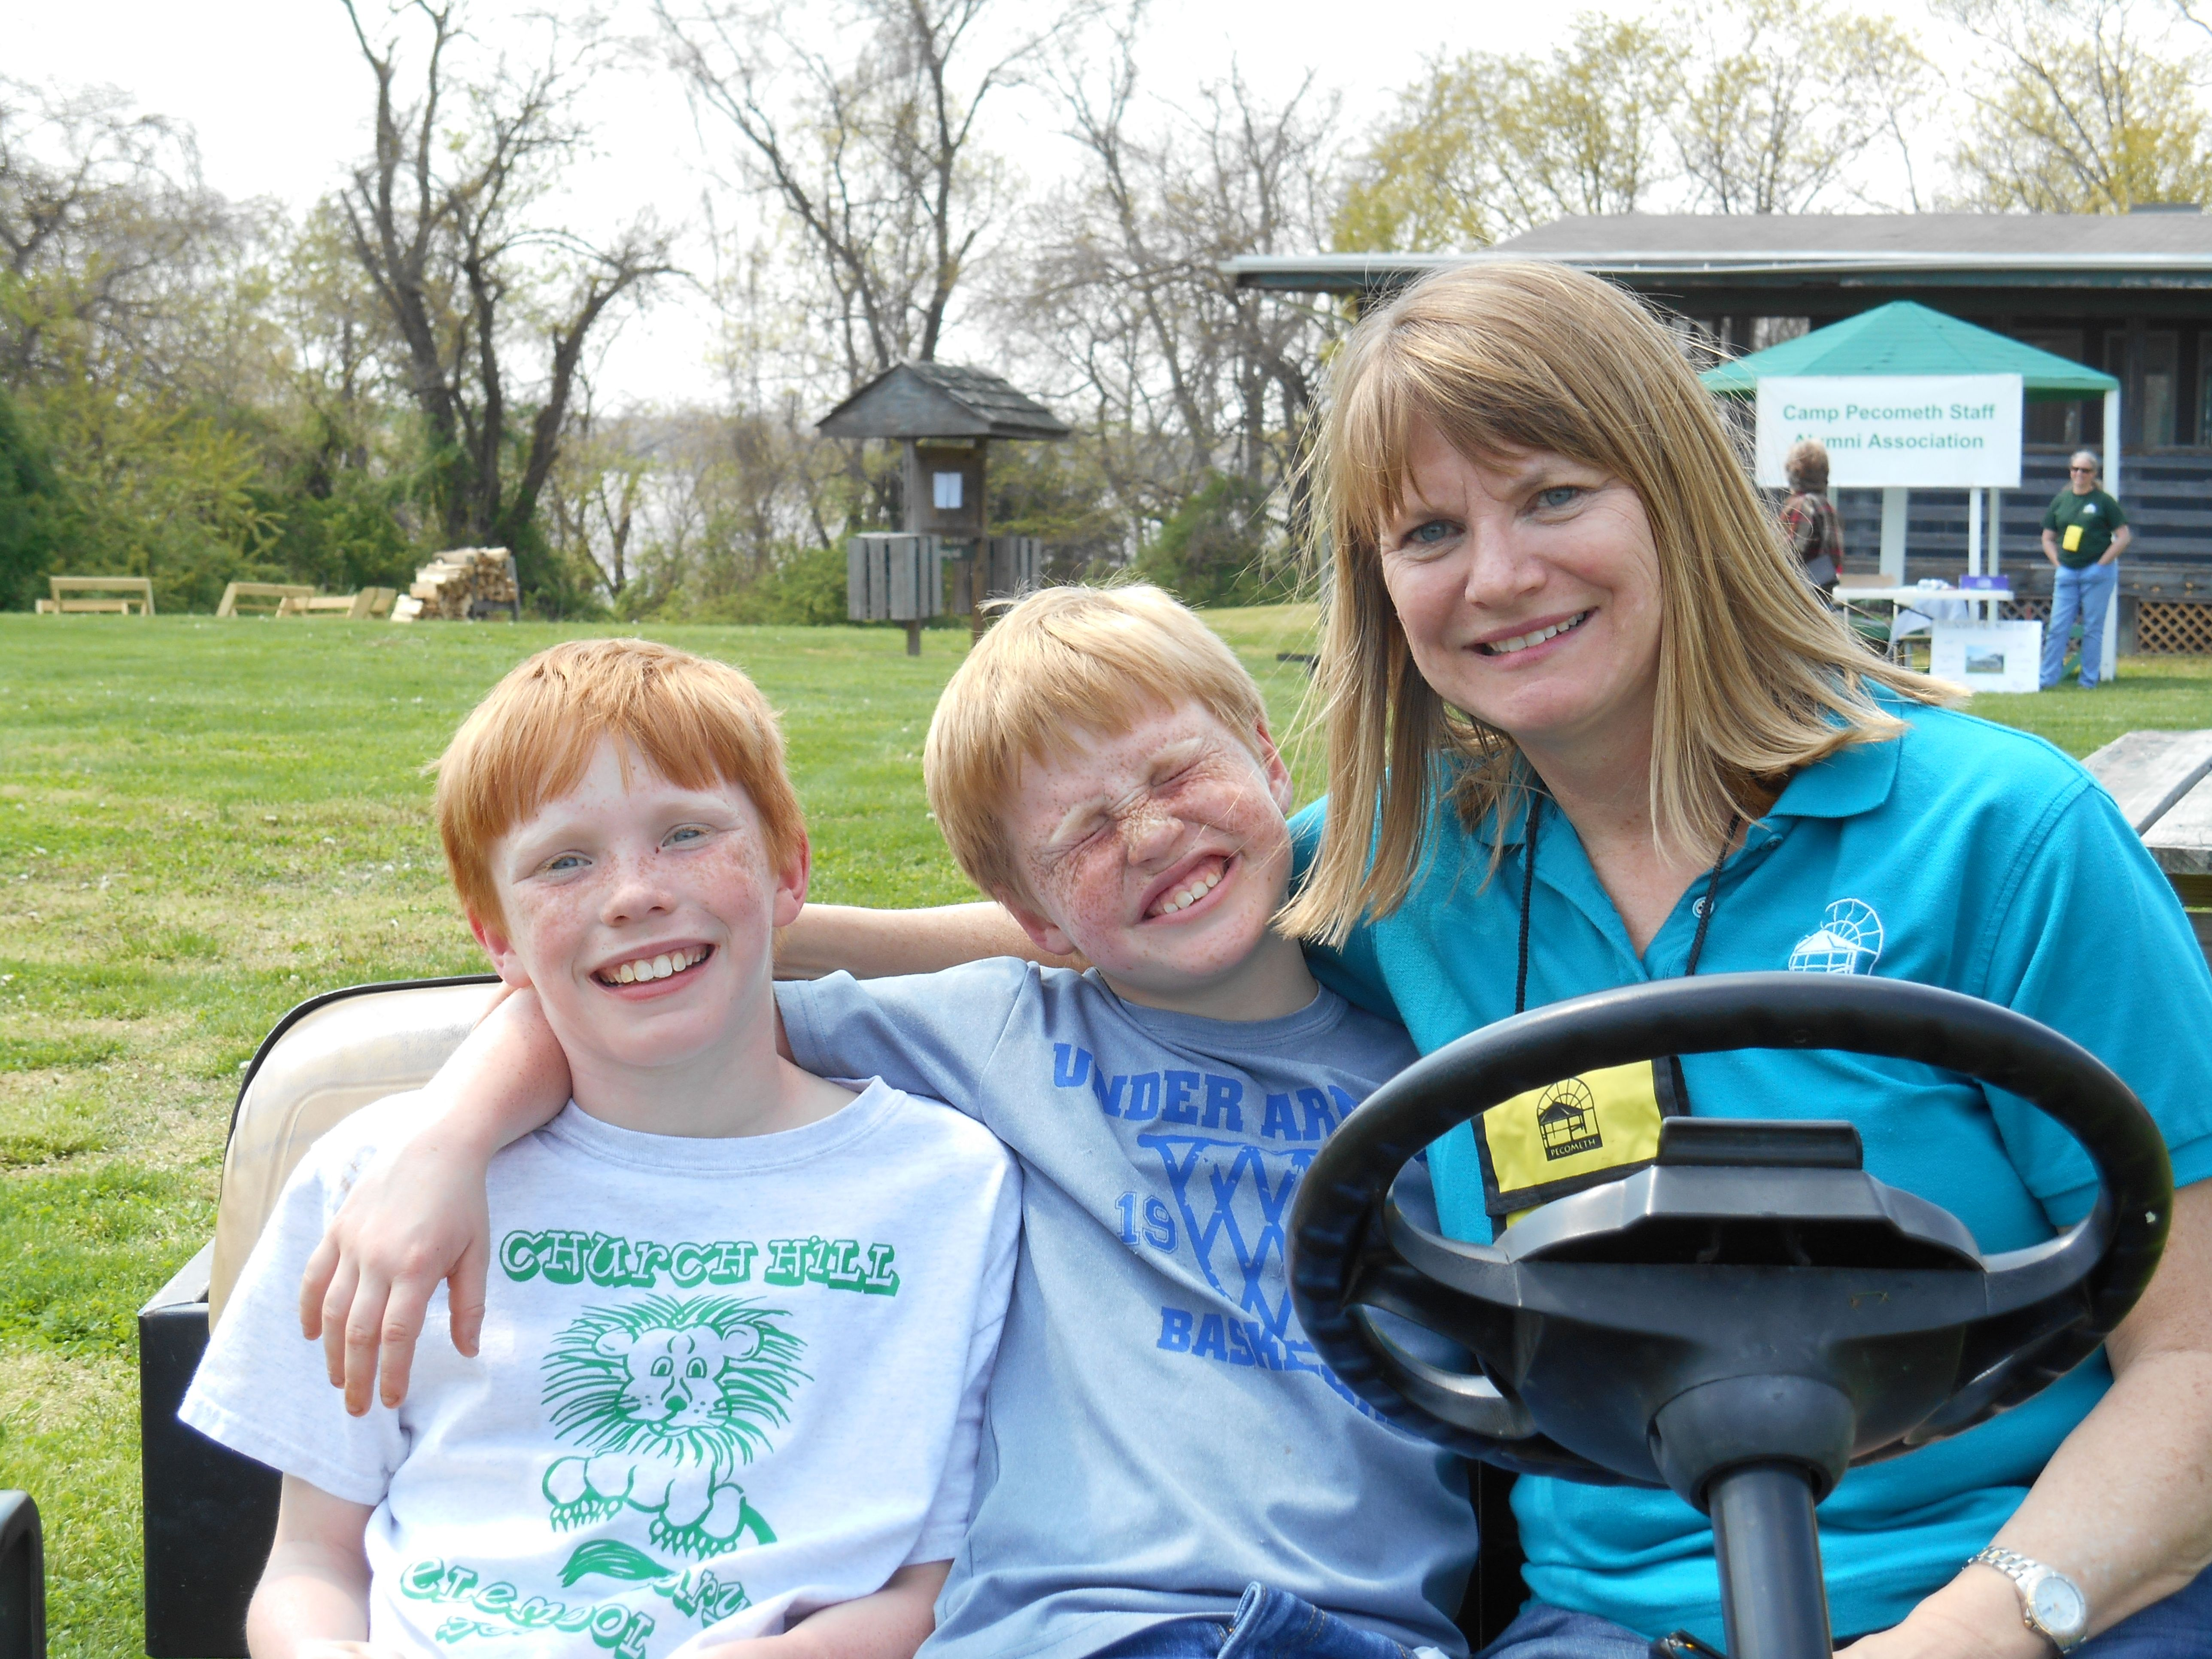 Pecometh Blog | 6 Things to Do While Your Kids are at Camp